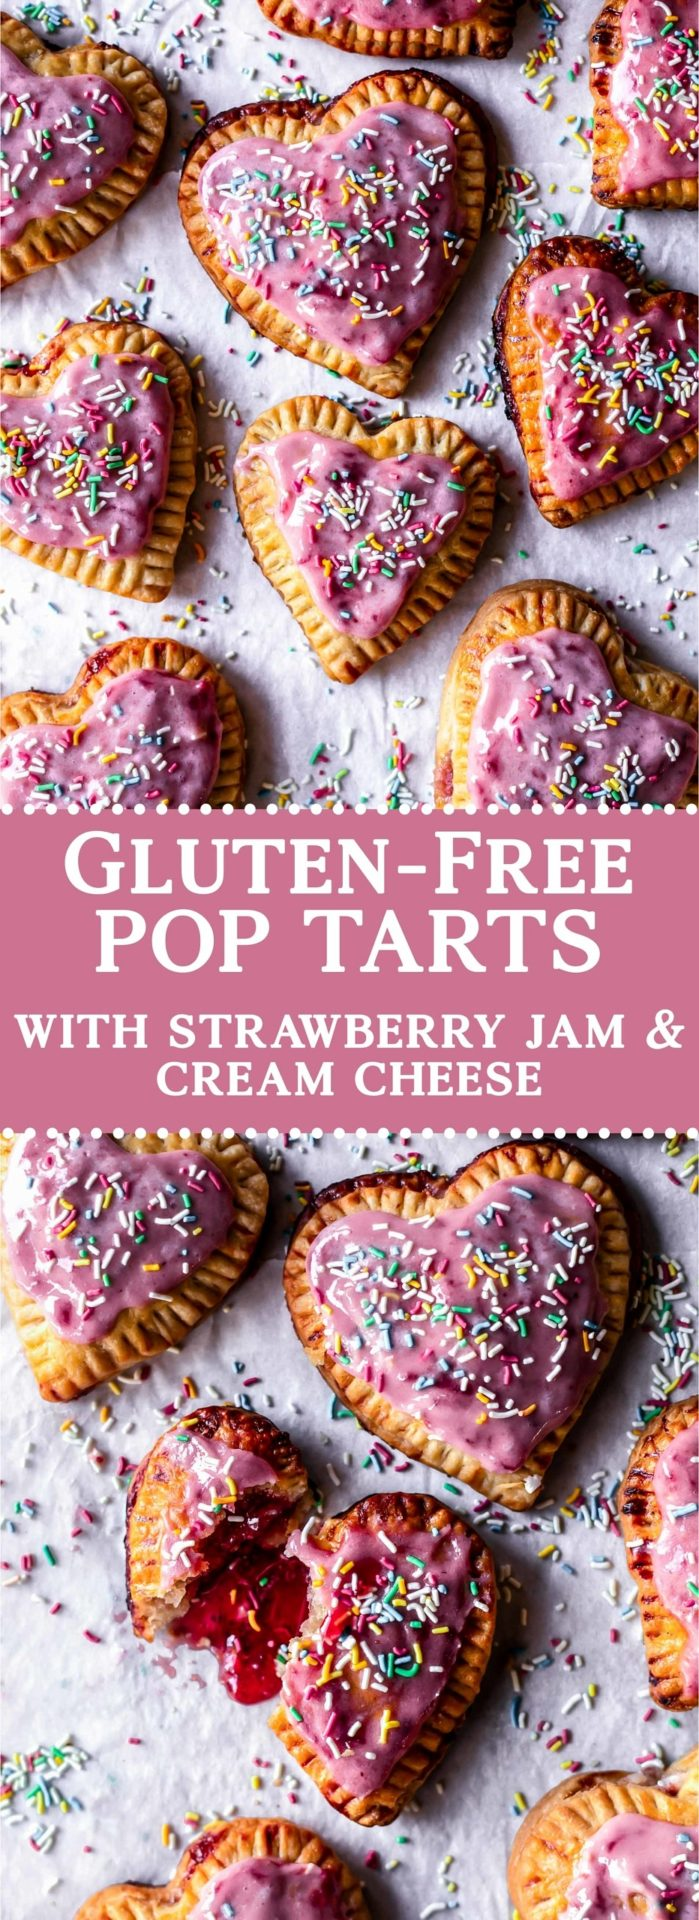 These Gluten-Free Pop-Tarts are flaky, buttery, and filled with the most delicious combo of cream cheese and strawberry jam.